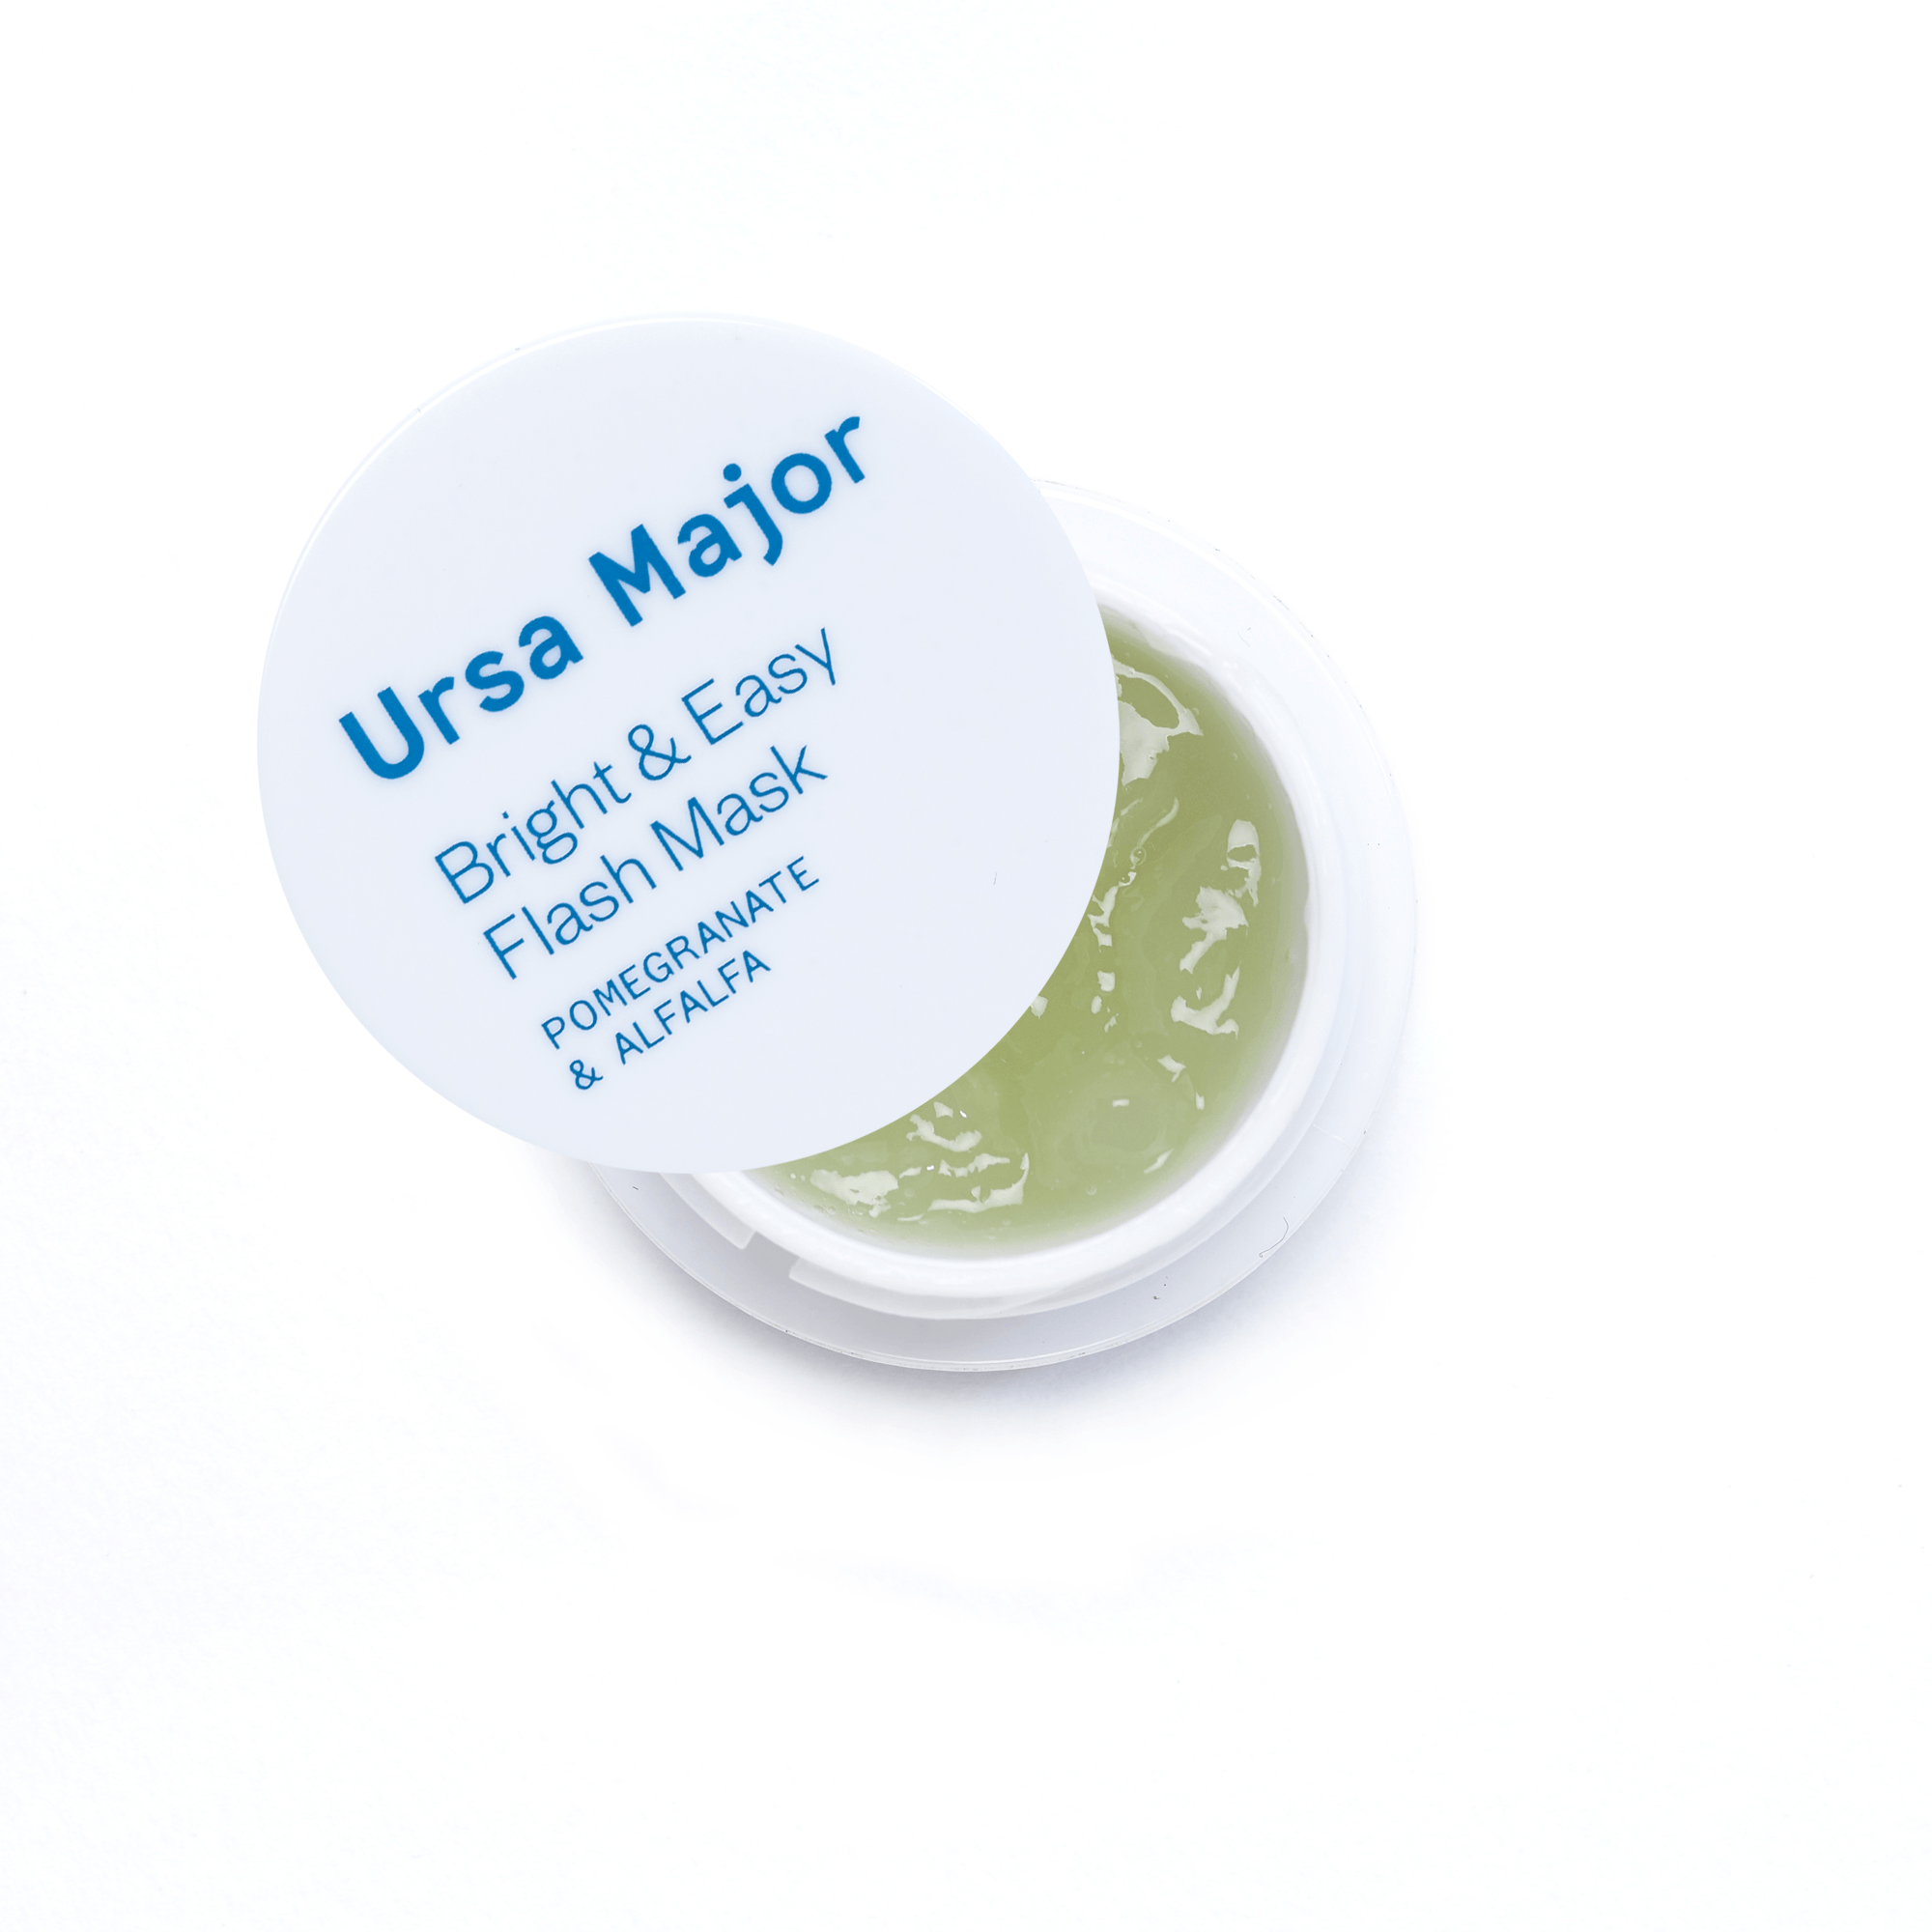 Sample Ursa Major Bright and Easy 3-Minute Flash Mask